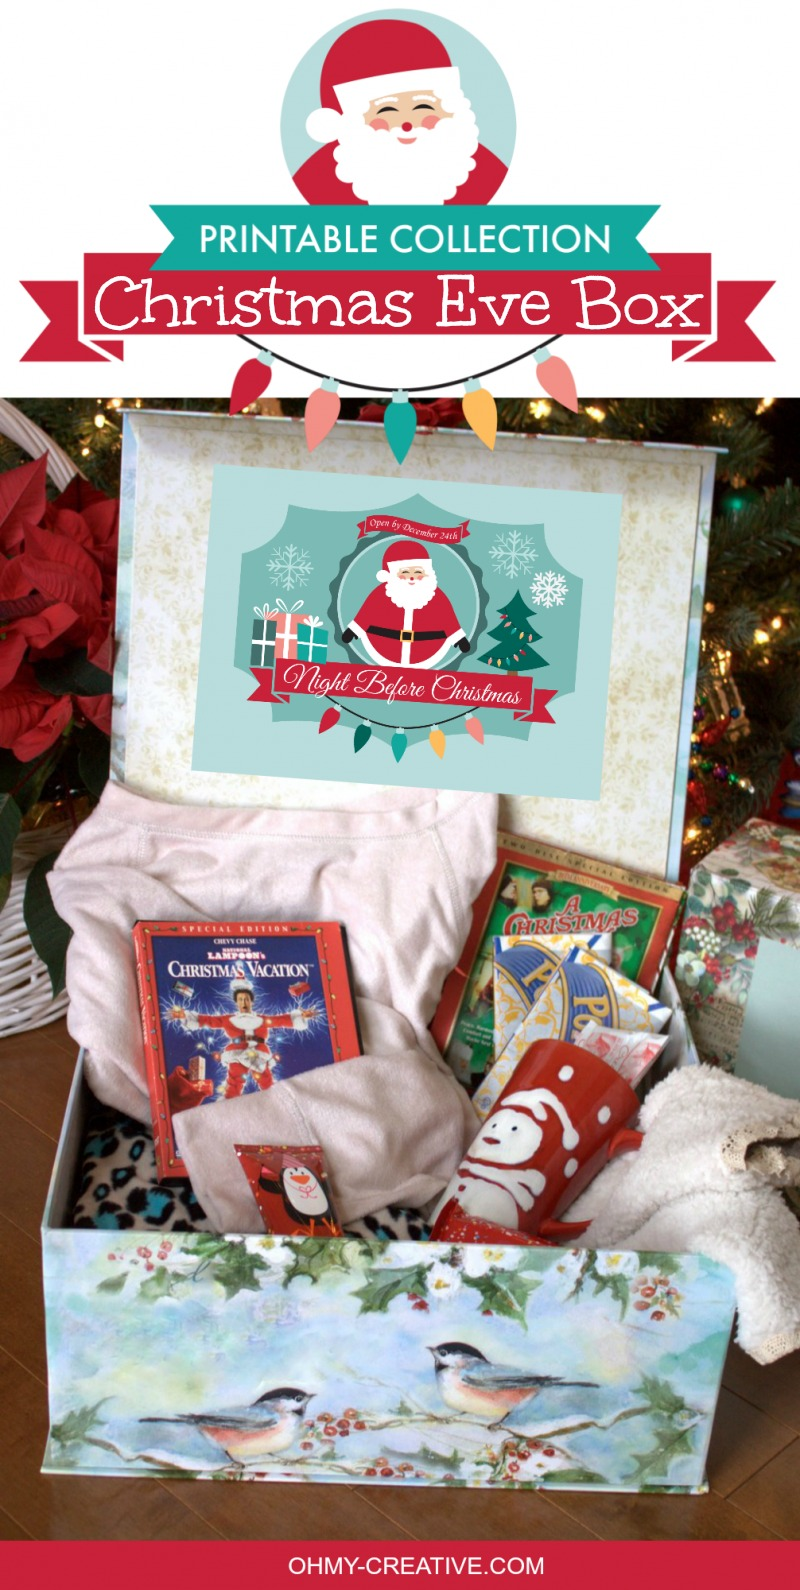 Christmas Eve Box Printables OHMY-CREATIVE.COM | Christmas Eve Gift Box | Christmas Eve Gift Box Ideas | Christmas Eve Traditions | The Night Before Christmas | Night Before Christmas Box | Things to do on Christmas Eve | Things to do on Christmas | Christmas Eve Gift | Christmas Eve | Kids Christmas Eve Box | Christmas Box